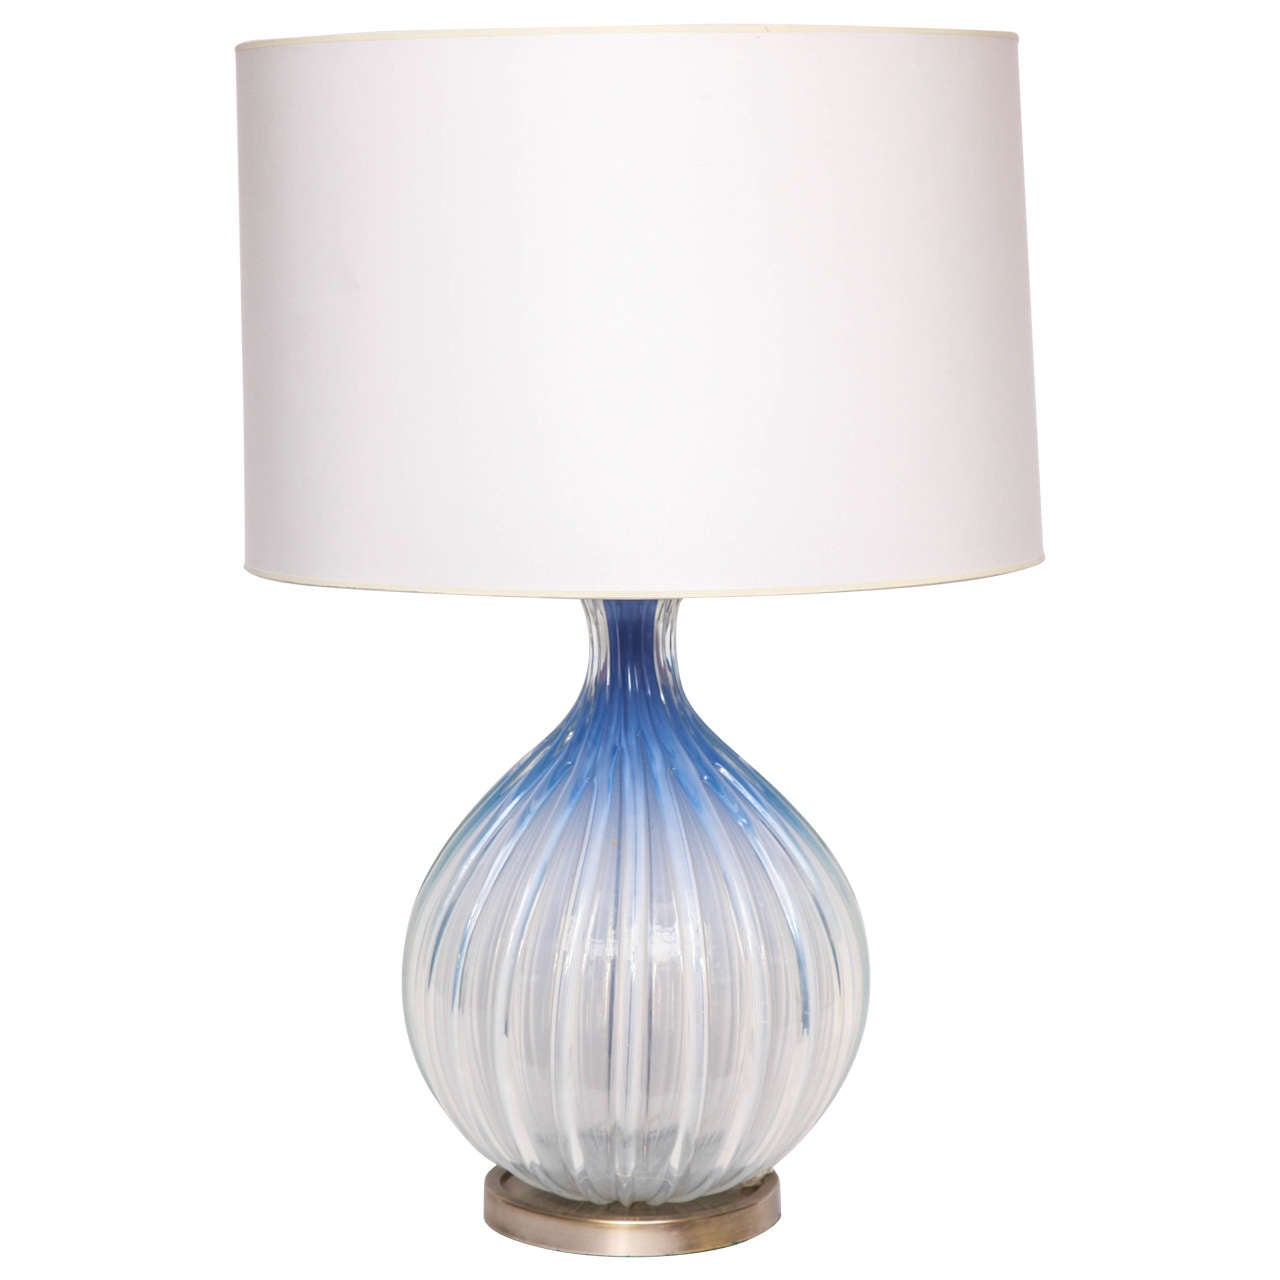 Seguso Table Lamp Murano Art Glass Italy 1950's For Sale